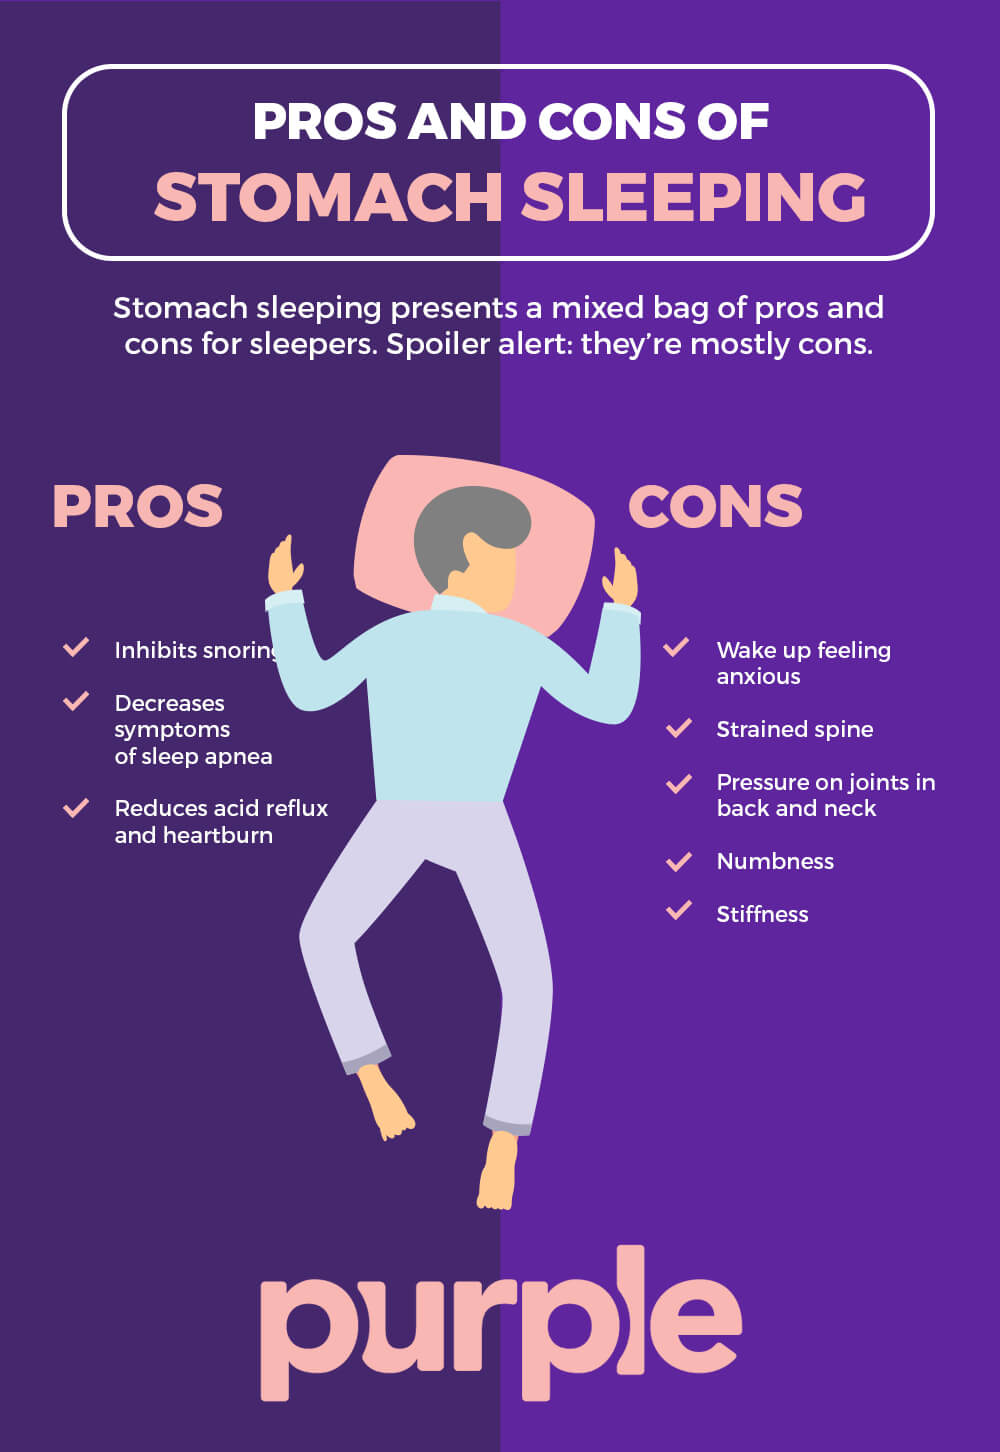 Pros and Cons of Stomach Sleeping